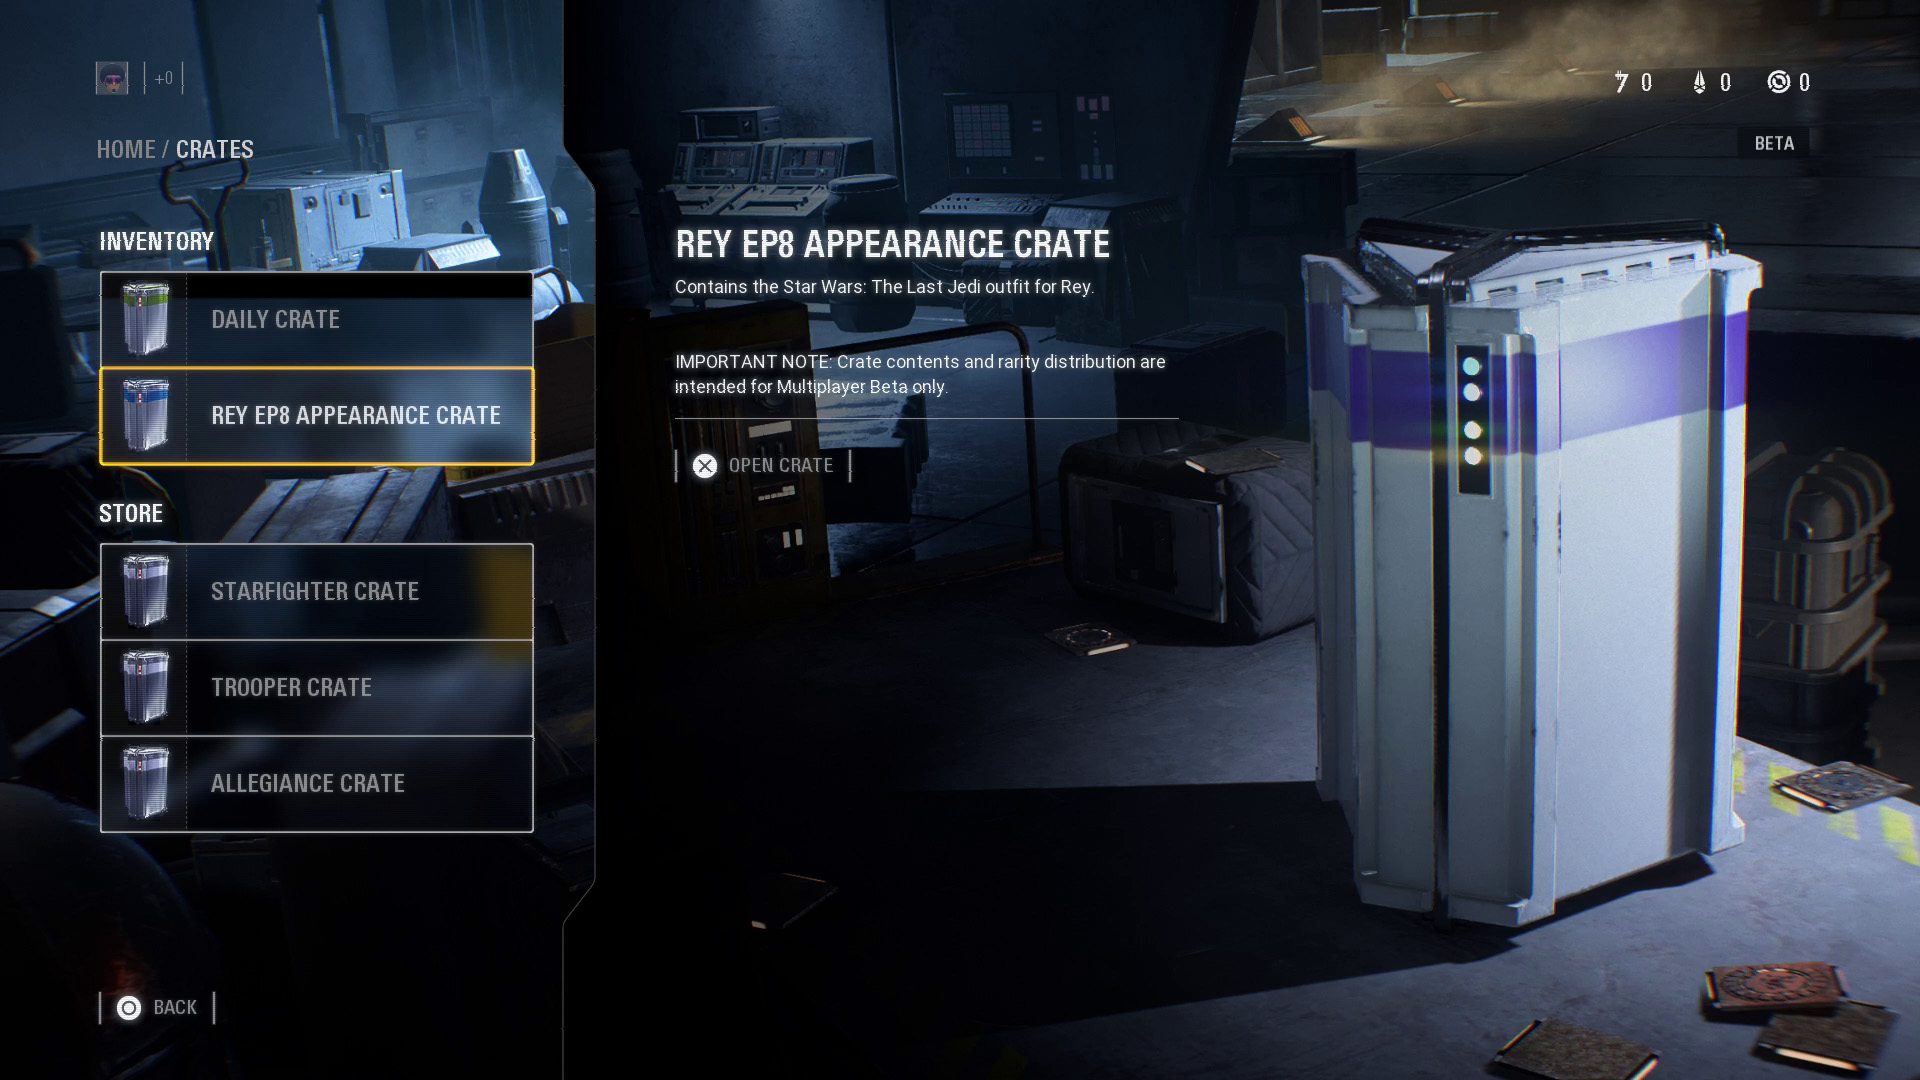 Star Wars: Battlefront 2 - Open beta has been launched